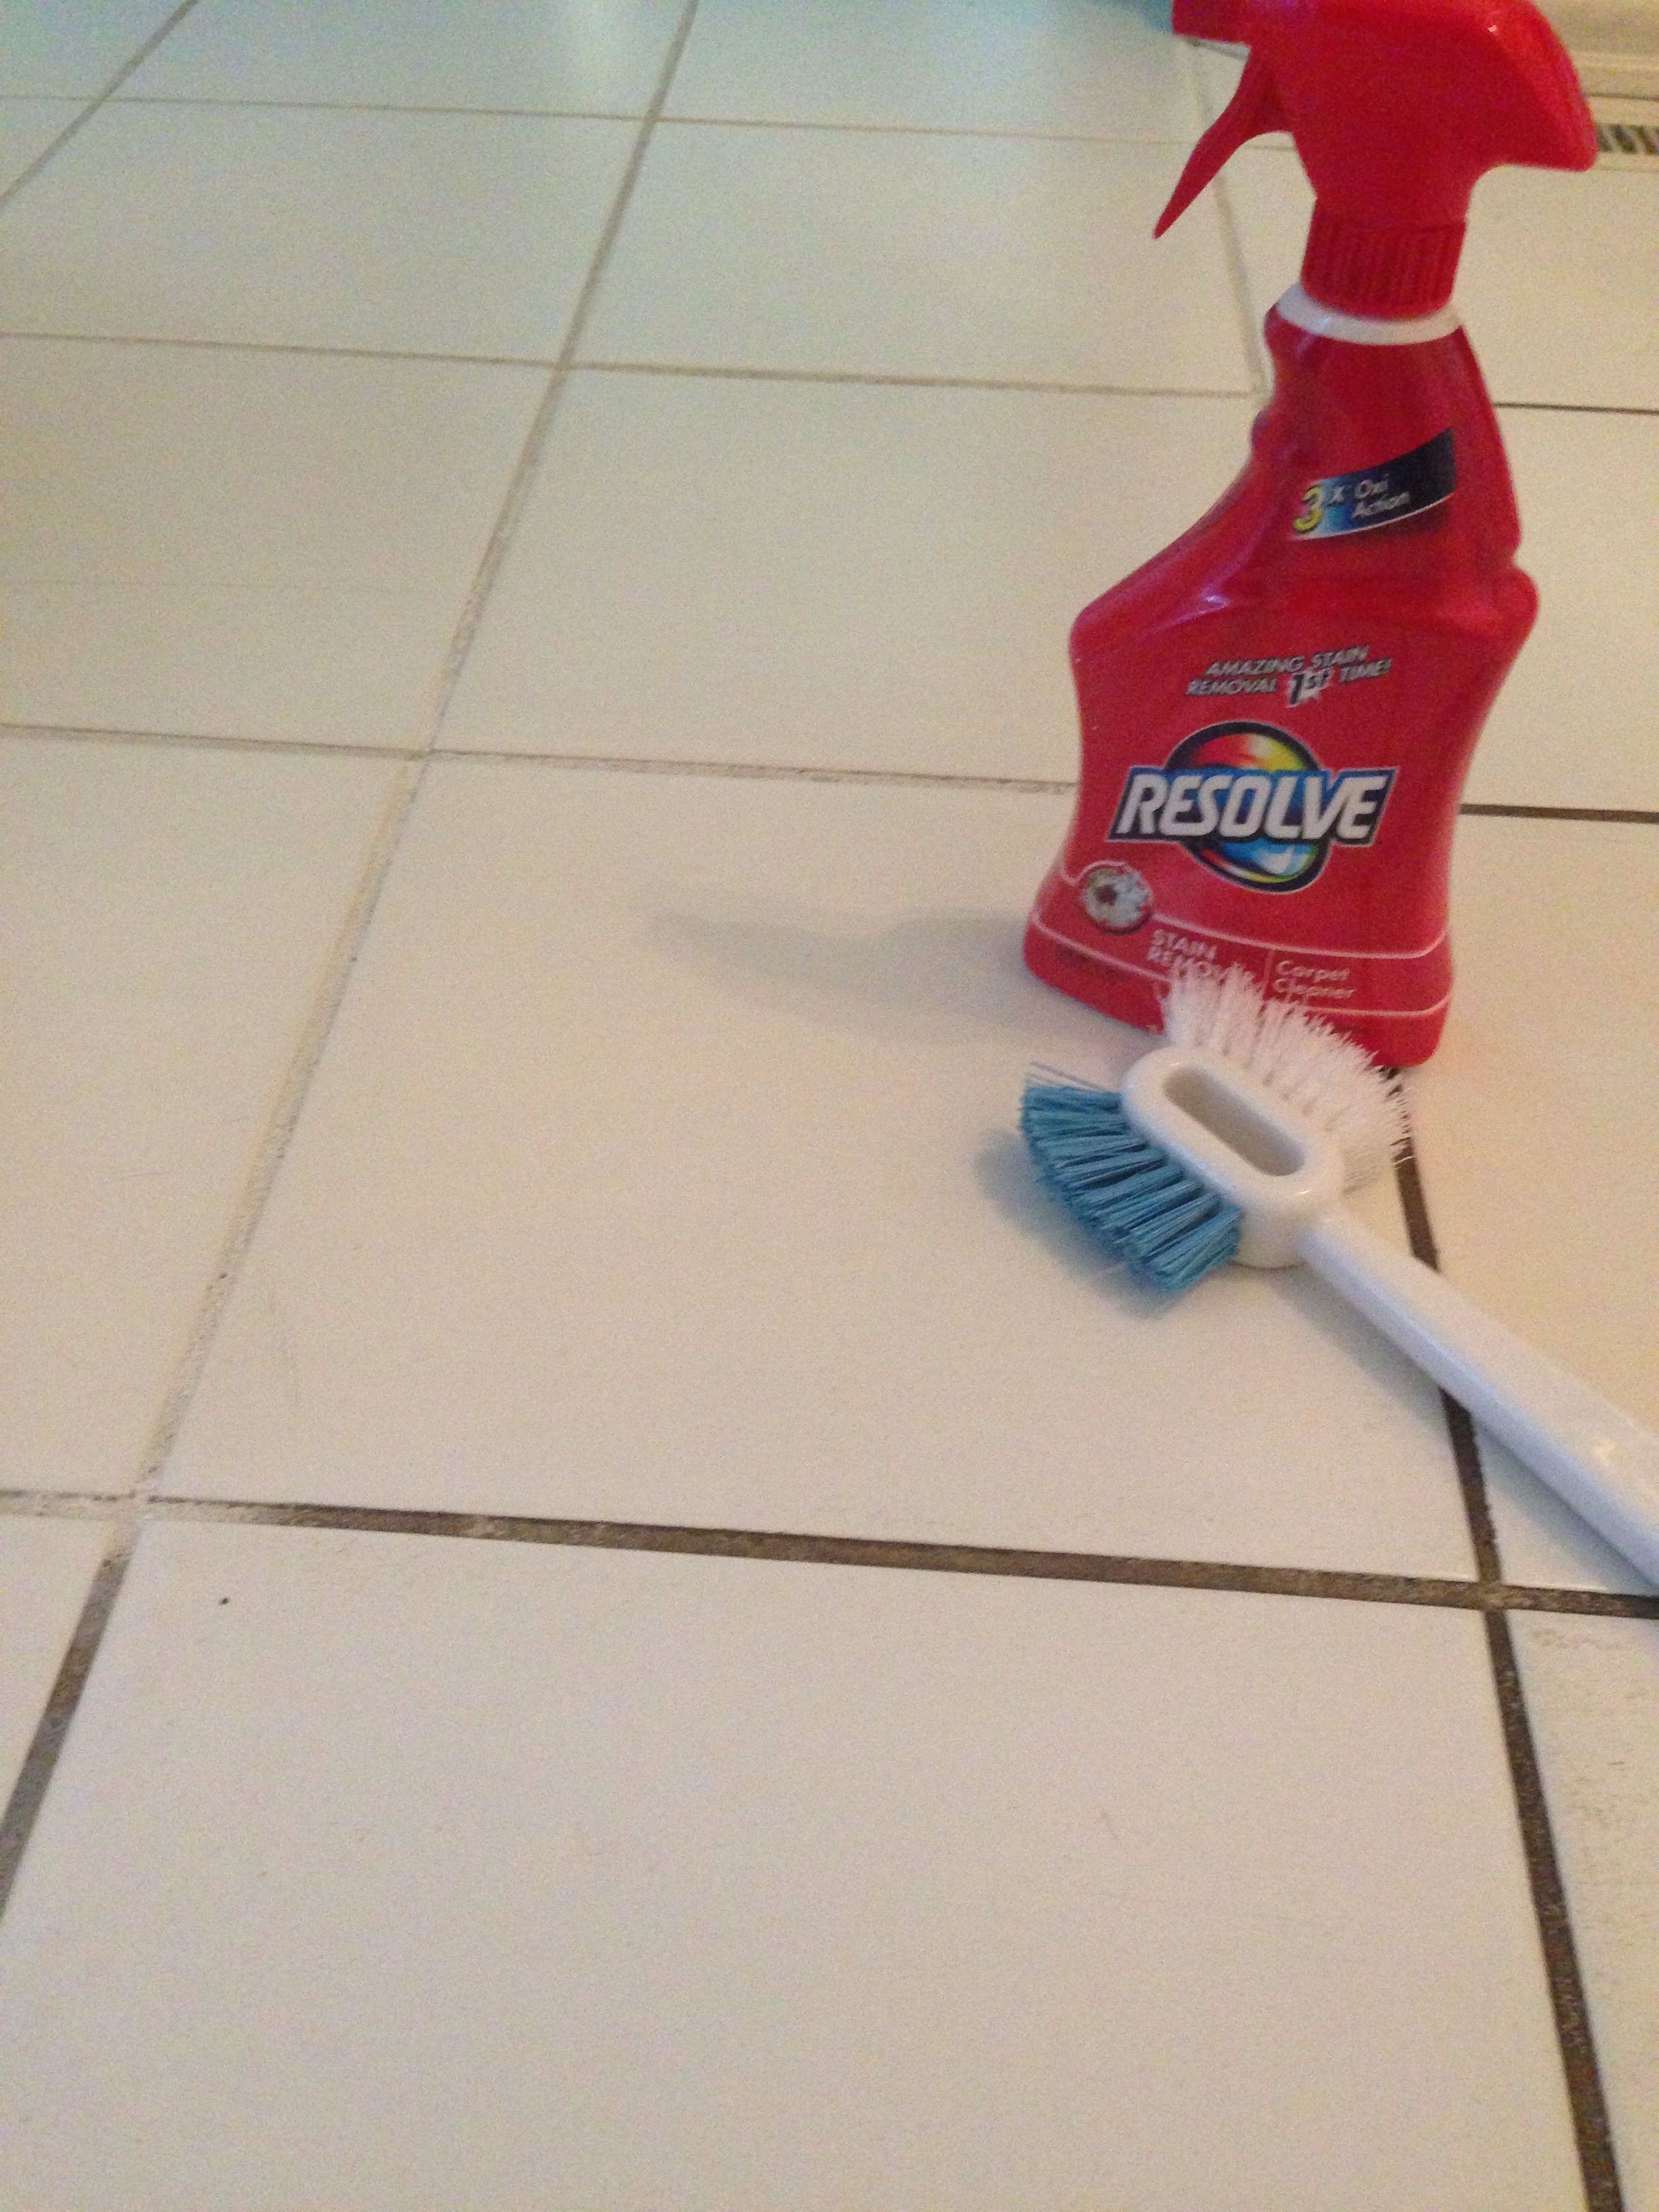 Beau I Have Been Wanting To Clean The Grout Between Our Kitchen Tiles For The  Longest Time